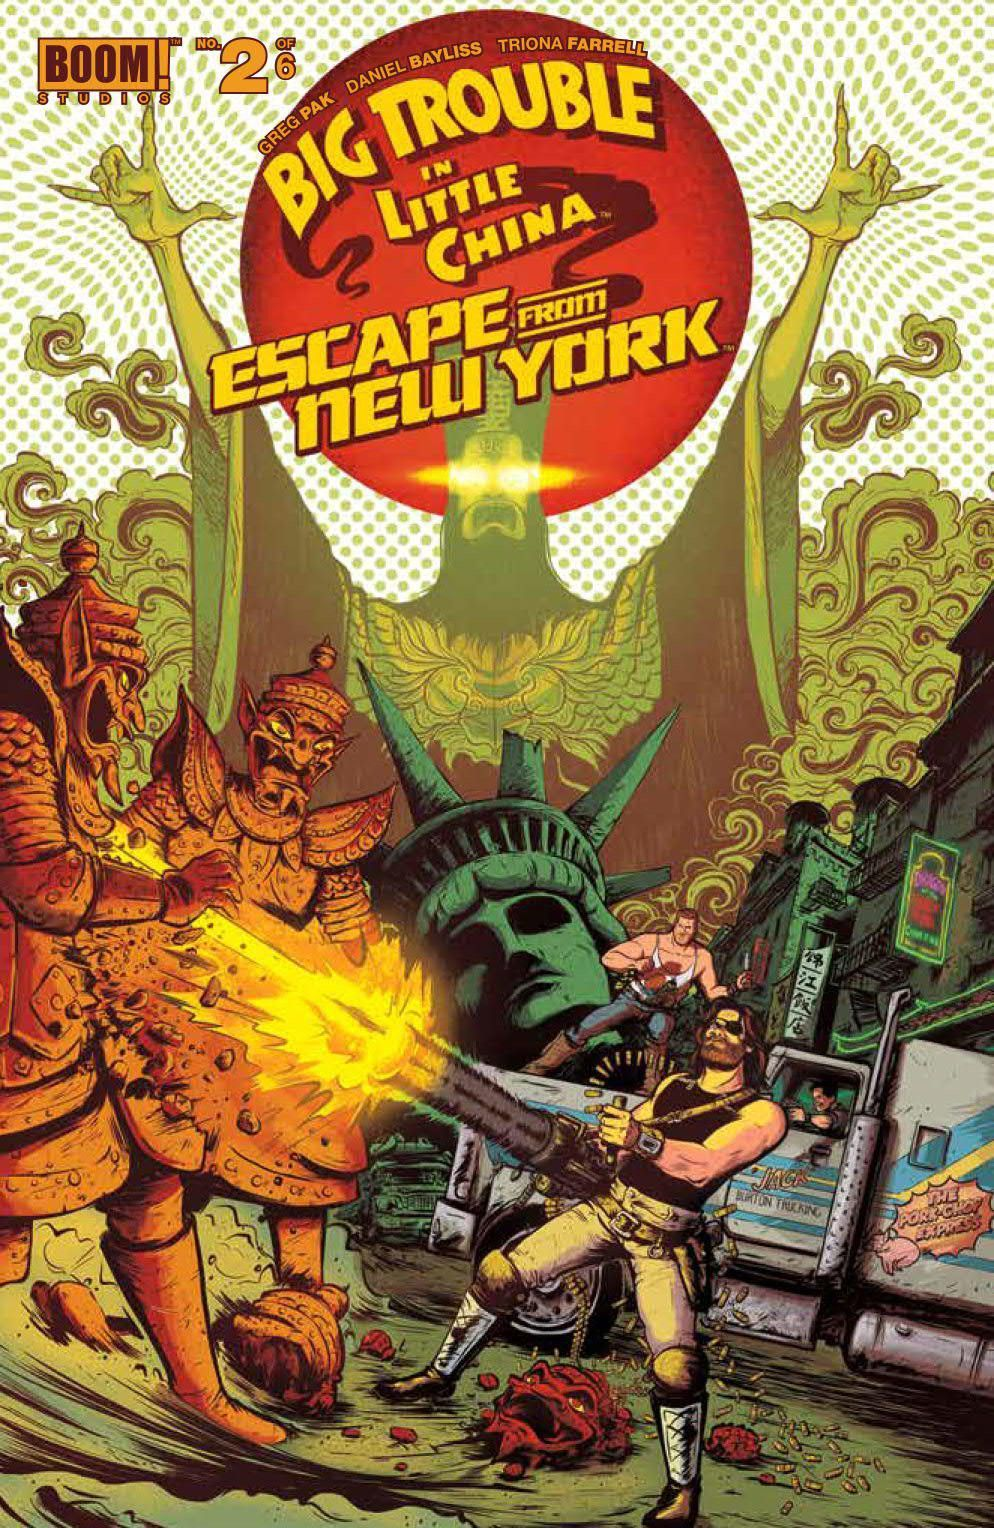 Big trouble little china escape new york 2 (With images